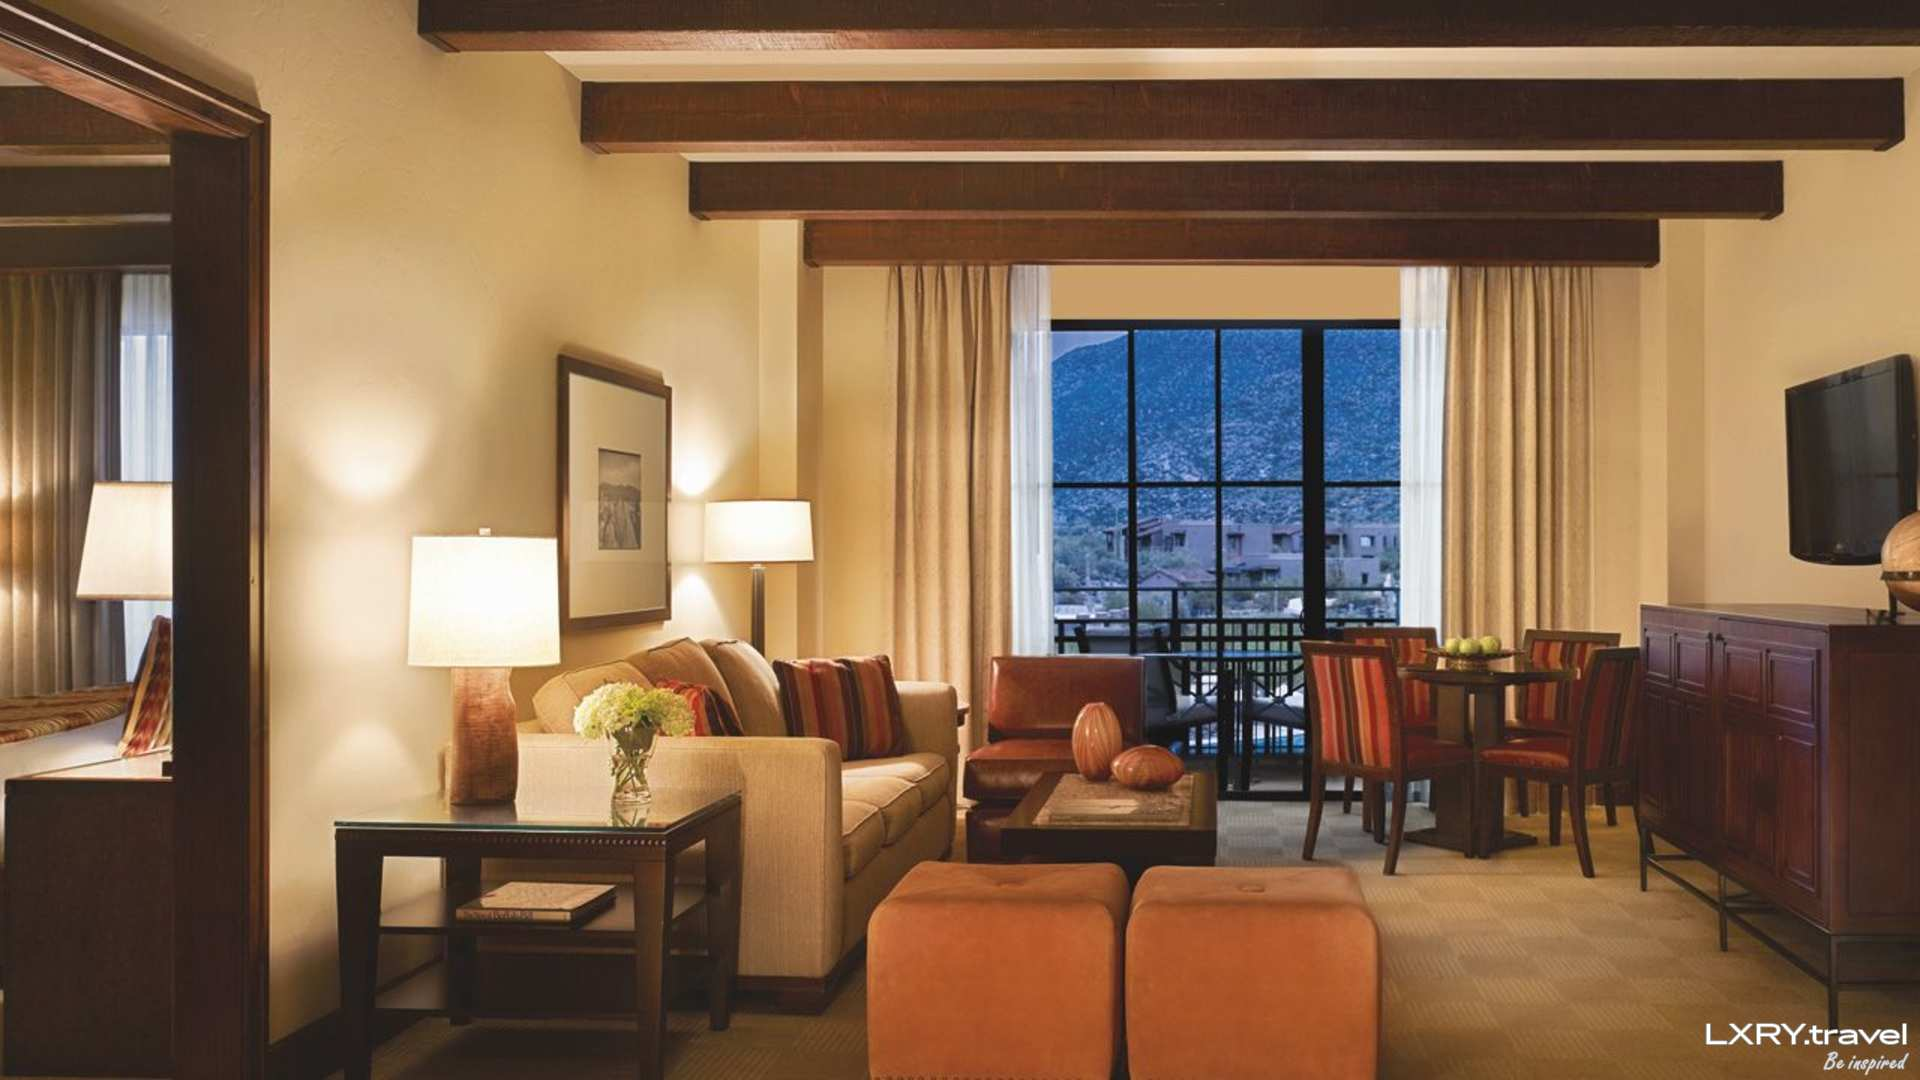 The Ritz-Carlton, Dove Mountain 40/56